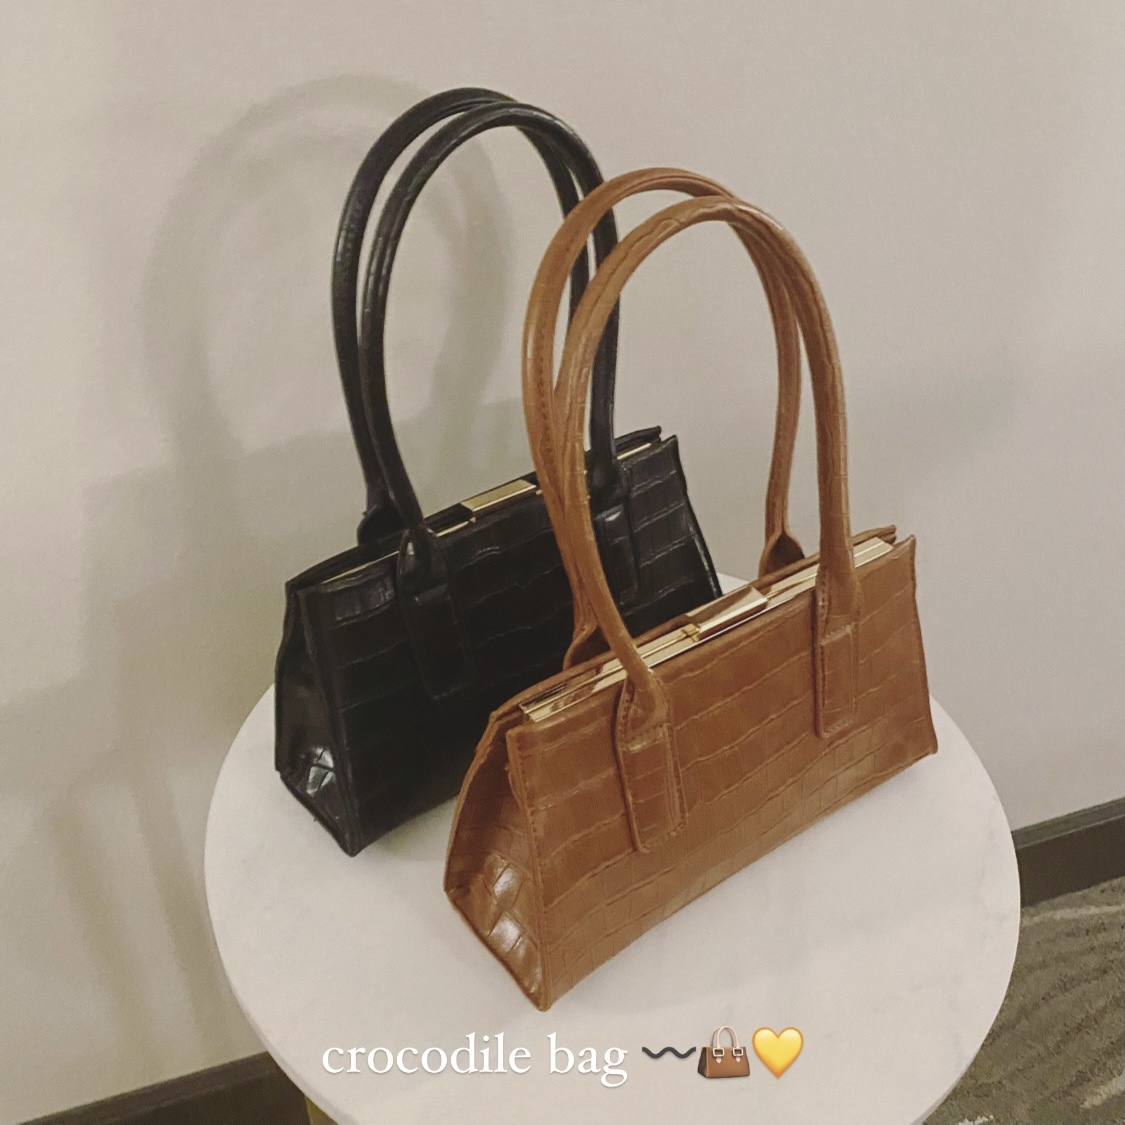 DAYNYC crocodile bag